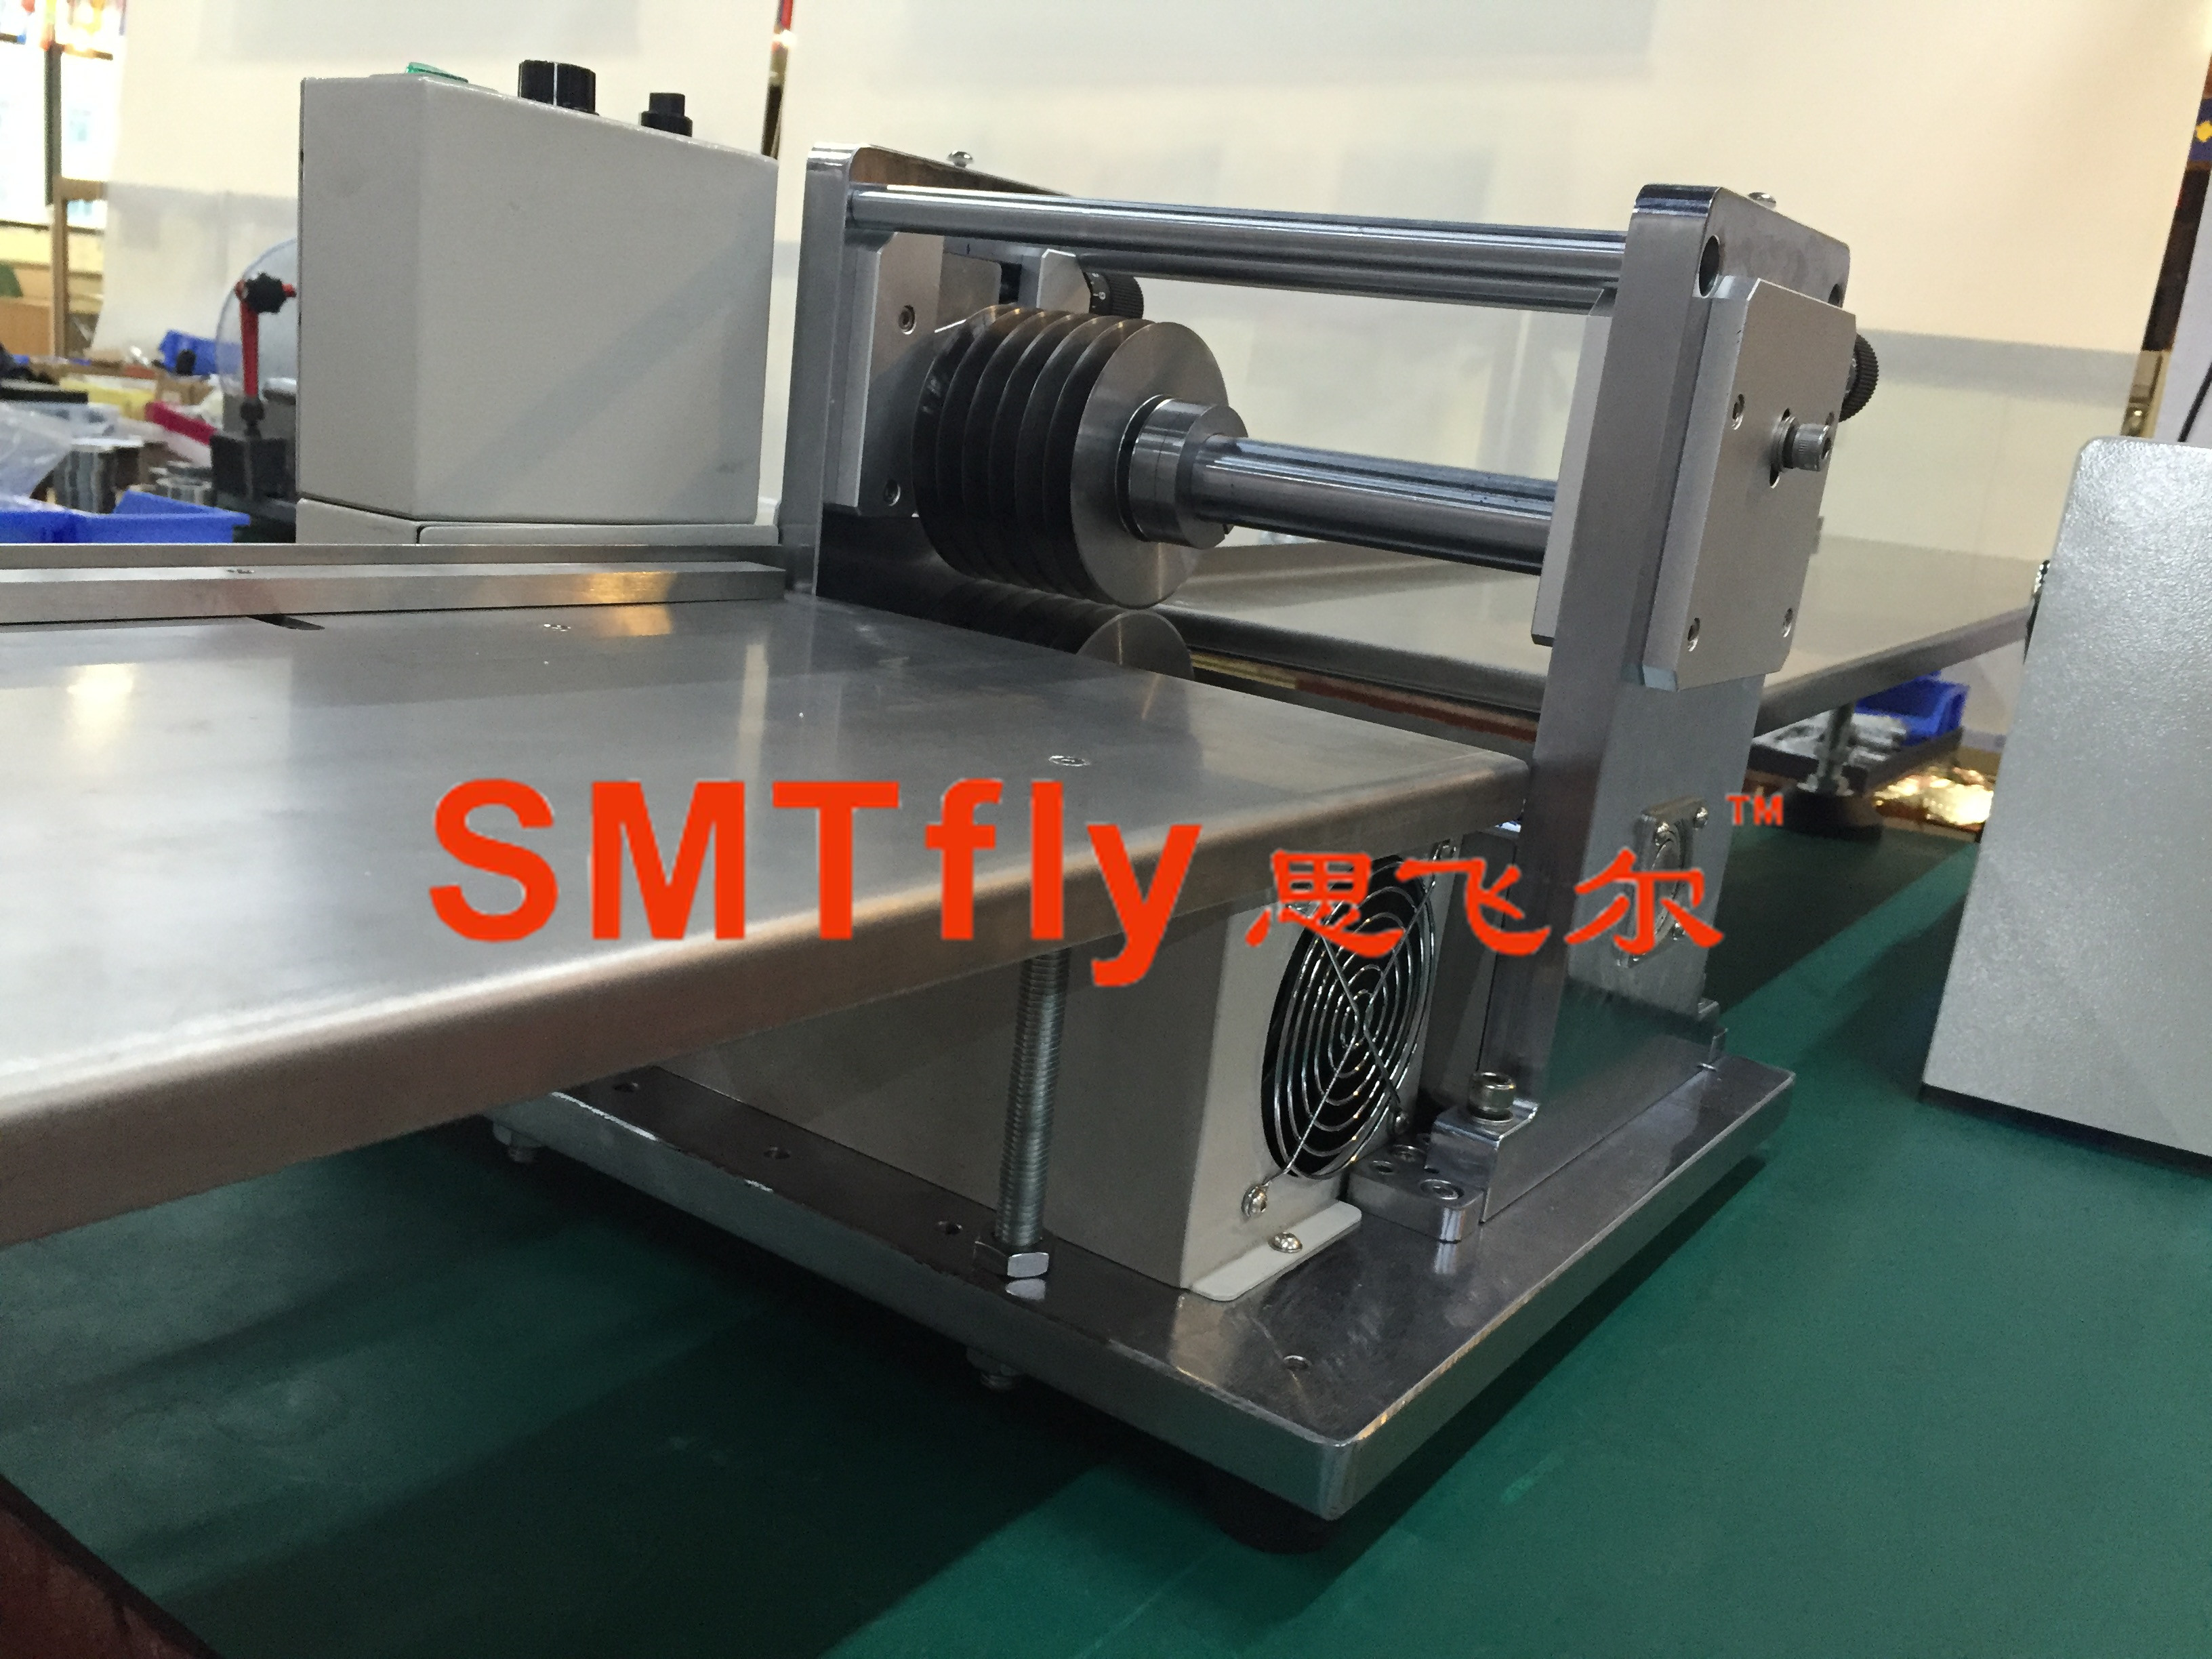 Circuit Board Separating Equipment,SMTfly-1SN